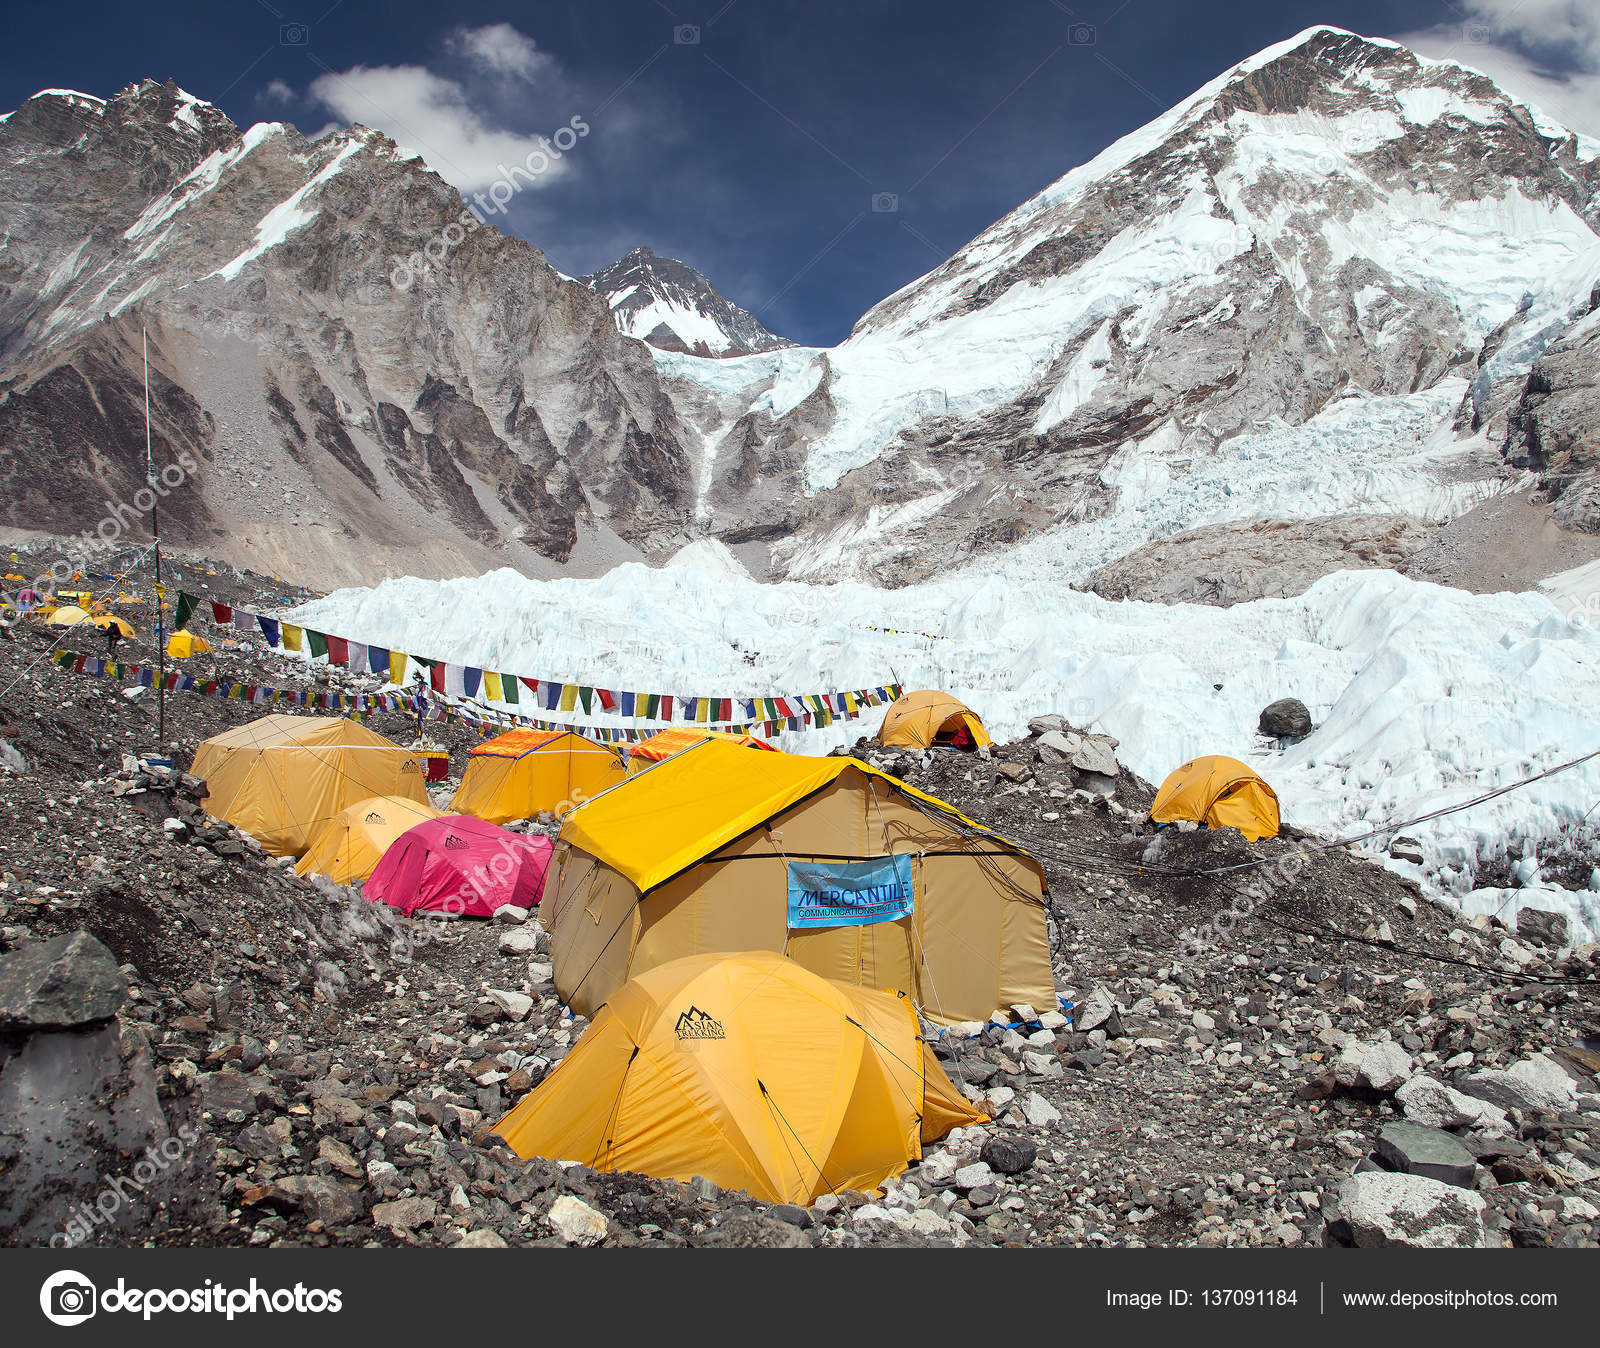 Mount Everest base c& tents and prayer flags u2014 Stock Photo & Mount Everest base camp tents and prayer flags u2013 Stock Editorial ...